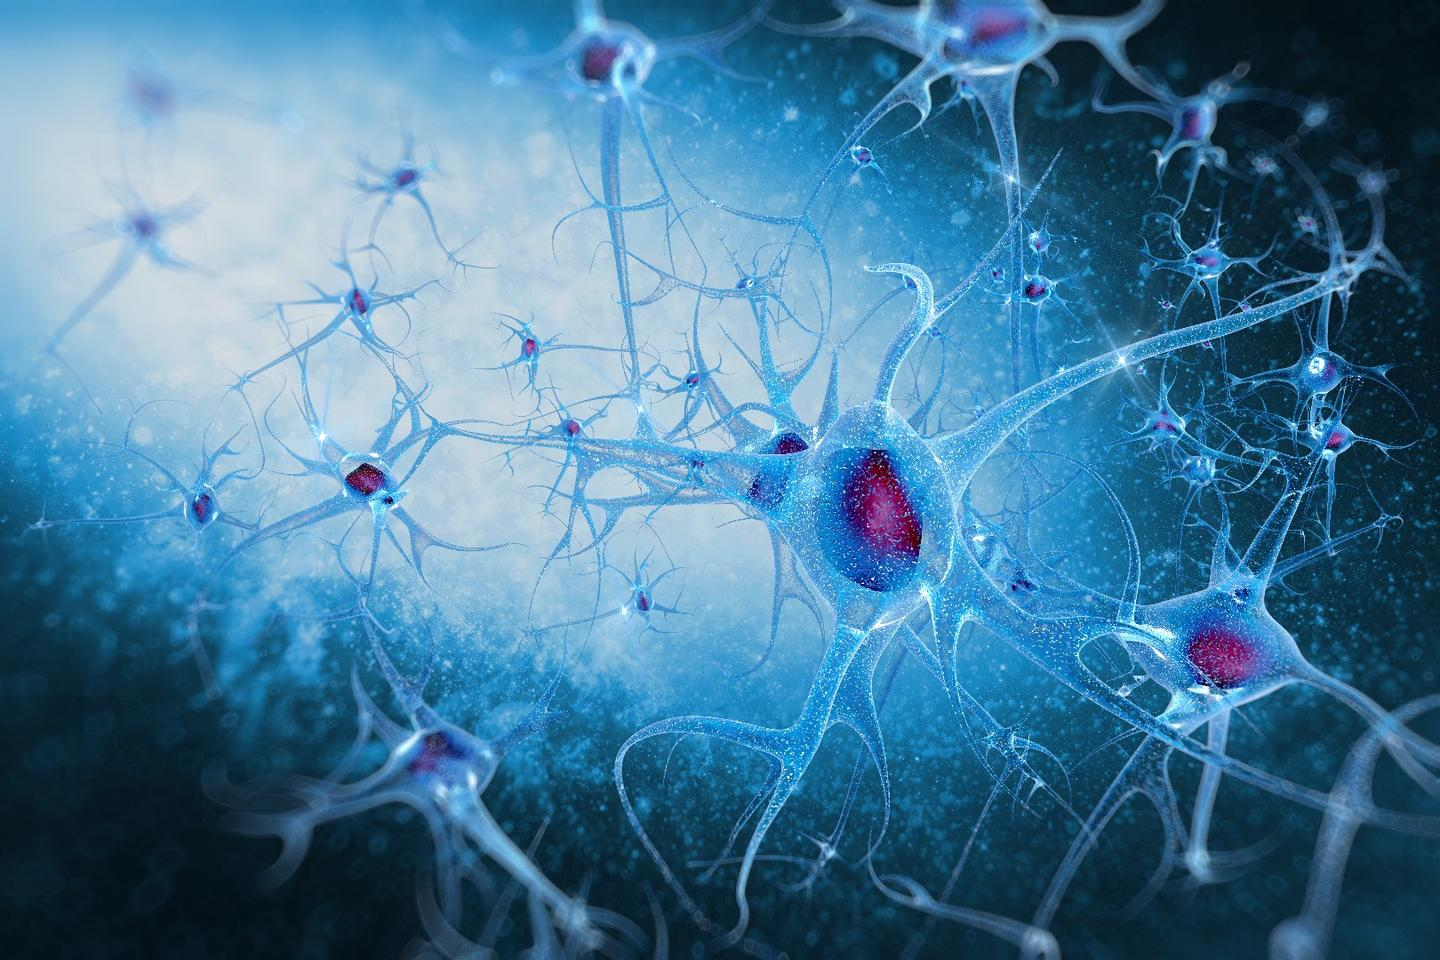 Scientists hope that aneurodevelopmental model of Williams syndrome will lead to broader insight intothe human social brain